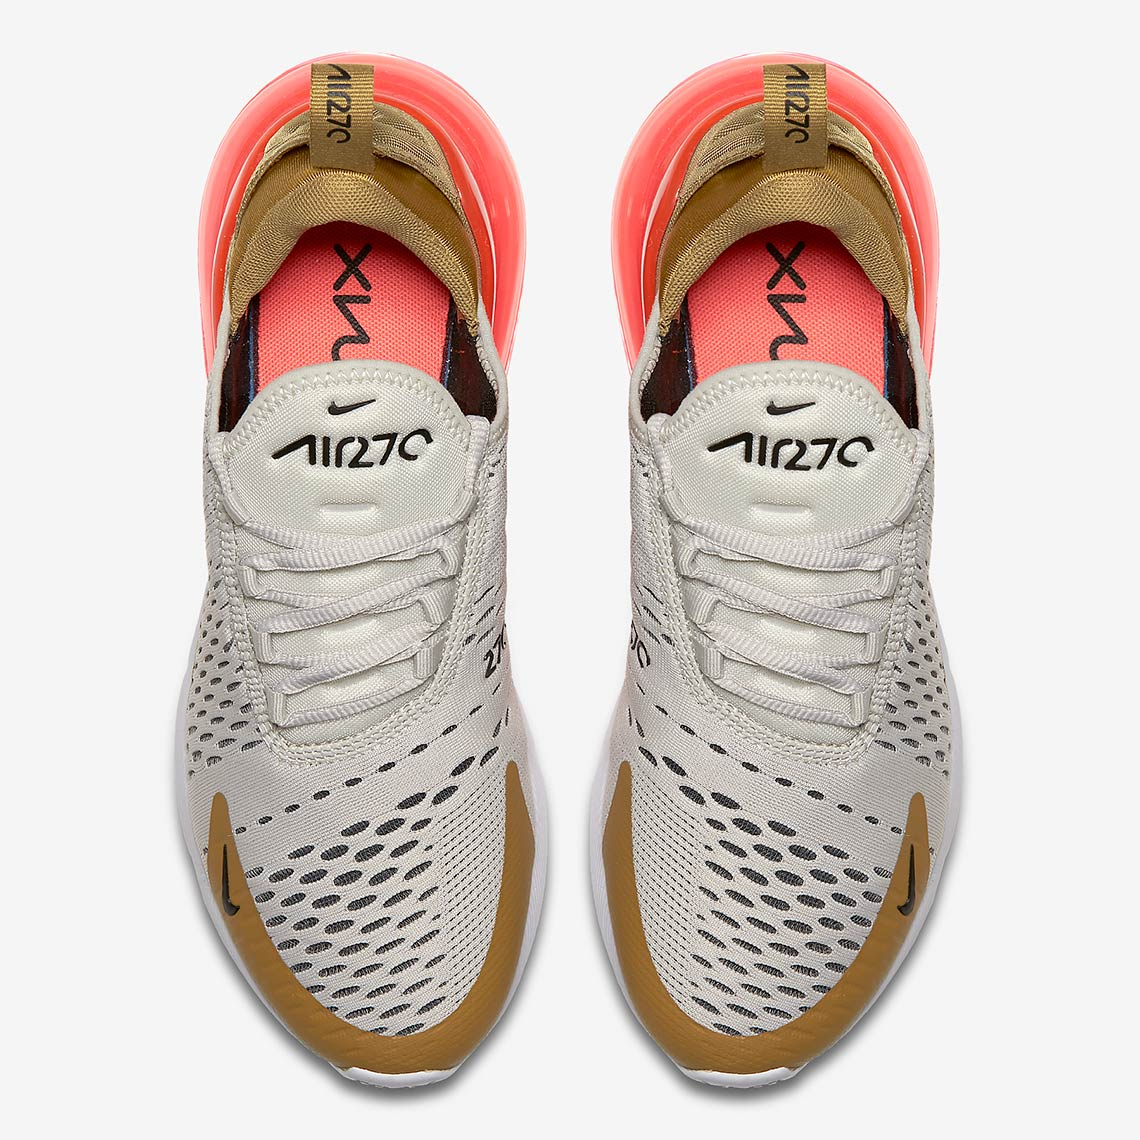 quality design 1376f aed5d Nike Air Max 270. Release Date  May 3, 2018  150. Color  Flight Gold Black-Light  Bone-White-Hot Punch Style Code  AH6789-700. Advertisement. Advertisement